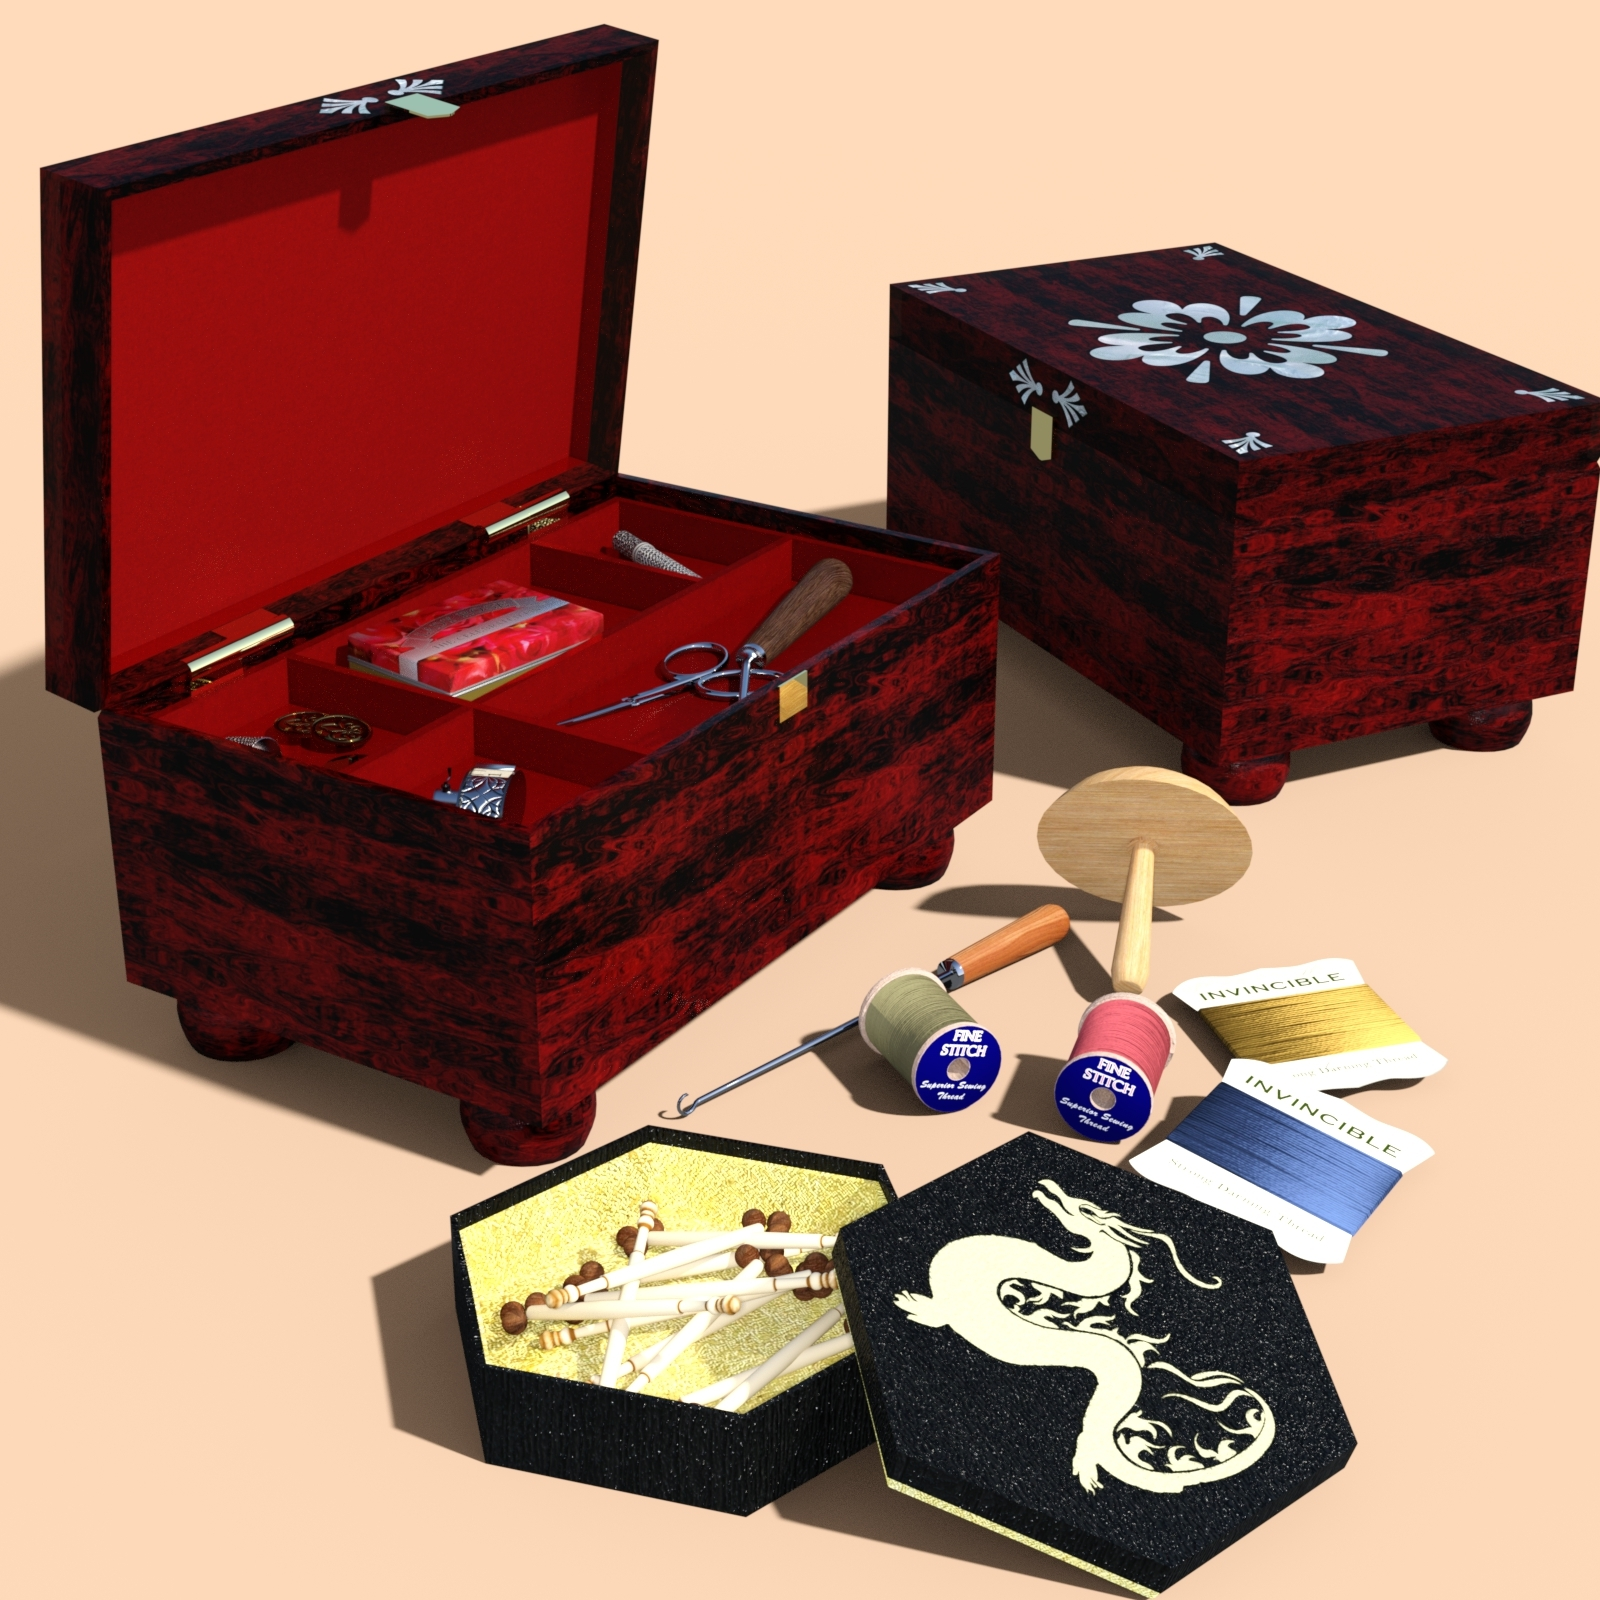 Victorian Sewing Boxes And Accessories For Daz Studio Iray